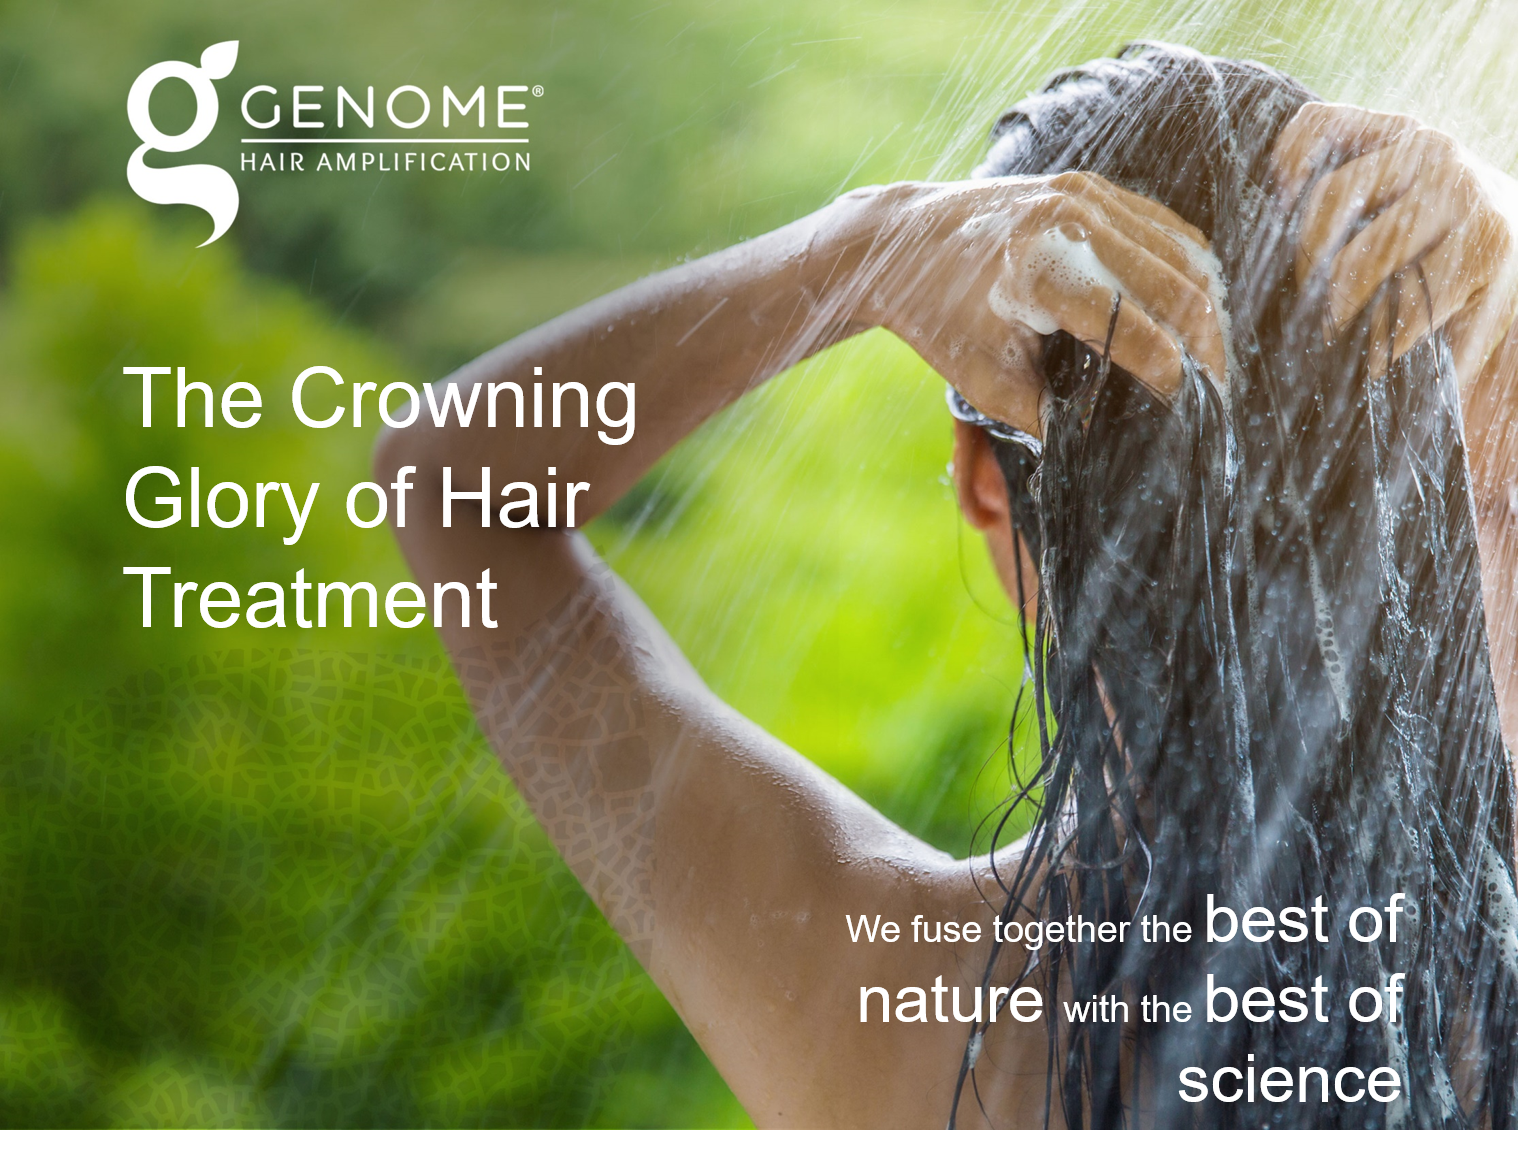 Genome, our new Hair growth products are incredibly popular - because they work